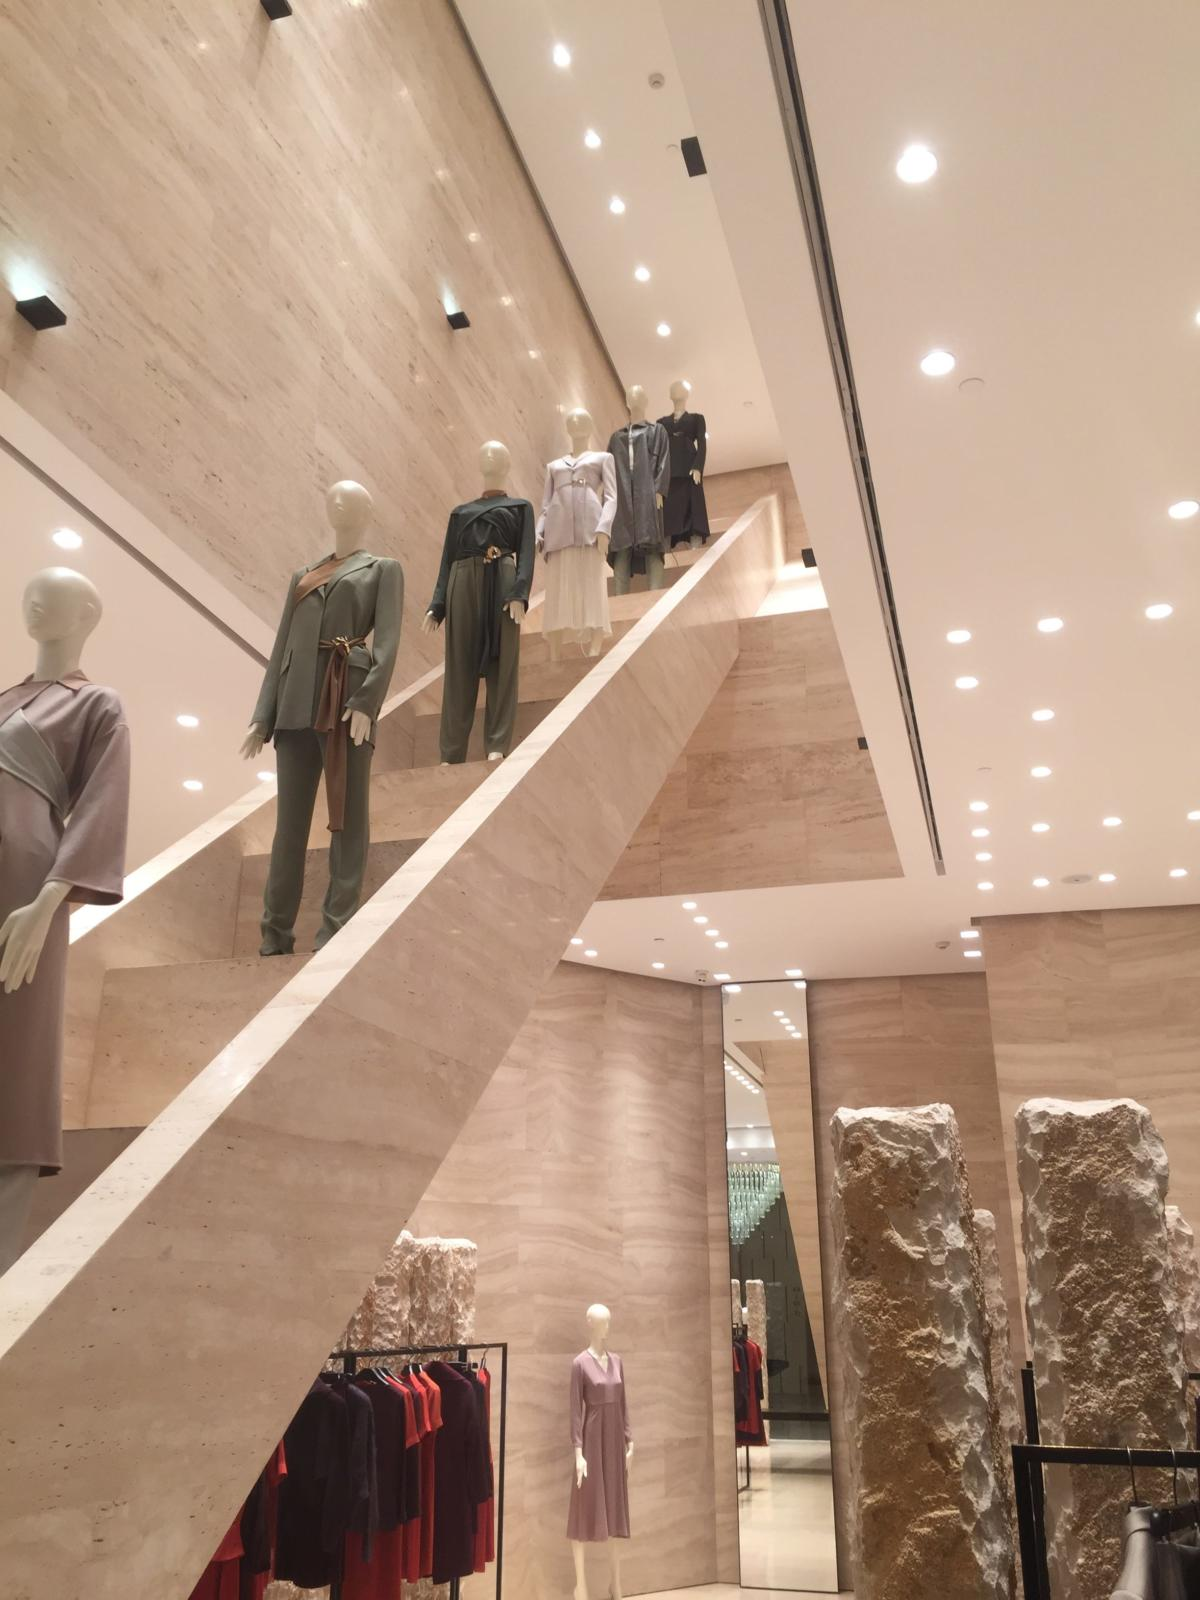 Fashion store in the center of fashion in Chongqing China